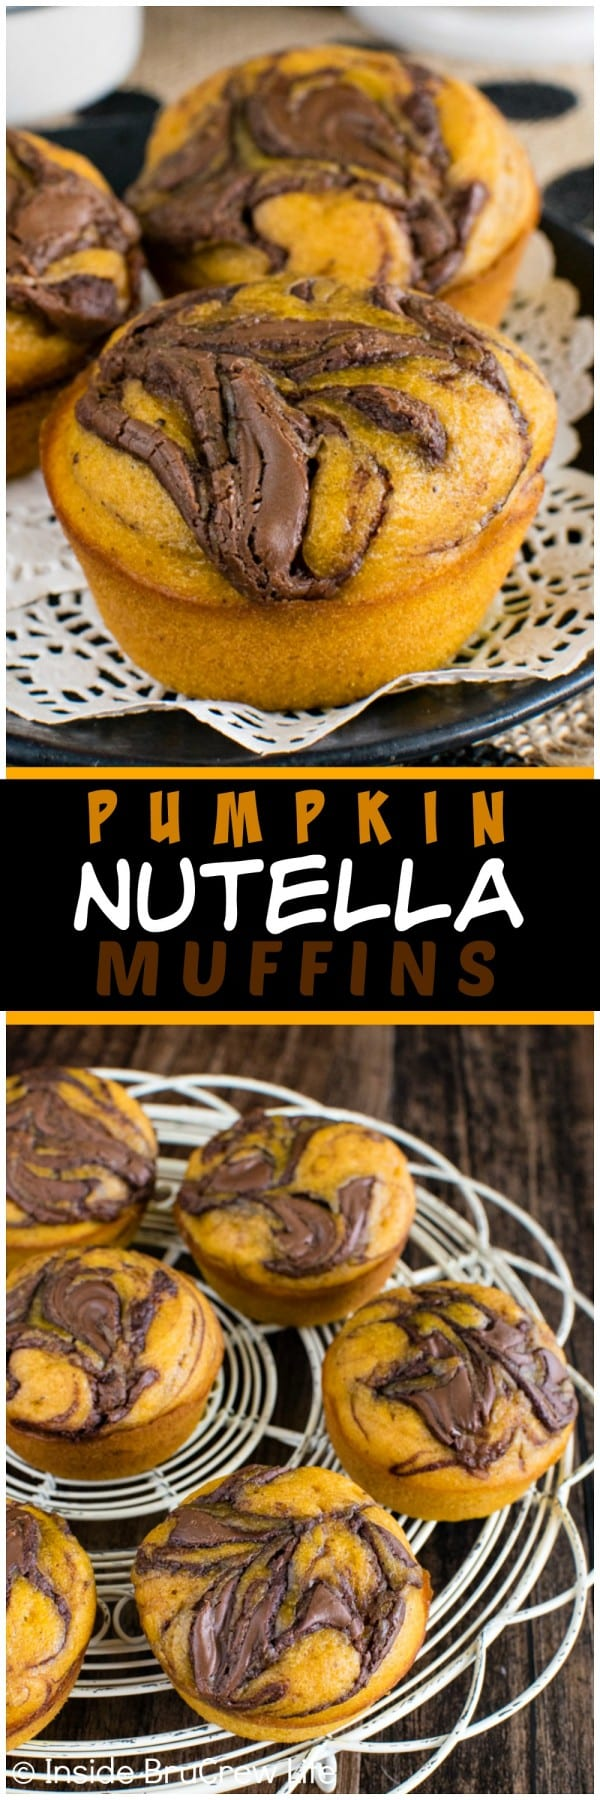 Pumpkin Nutella Muffins - soft pumpkin muffins with a chocolate swirl makes a delicious treat for breakfast or an afternoon snack. Try this awesome recipe this fall. #breakfast #muffins #pumpkin #nutella #fall